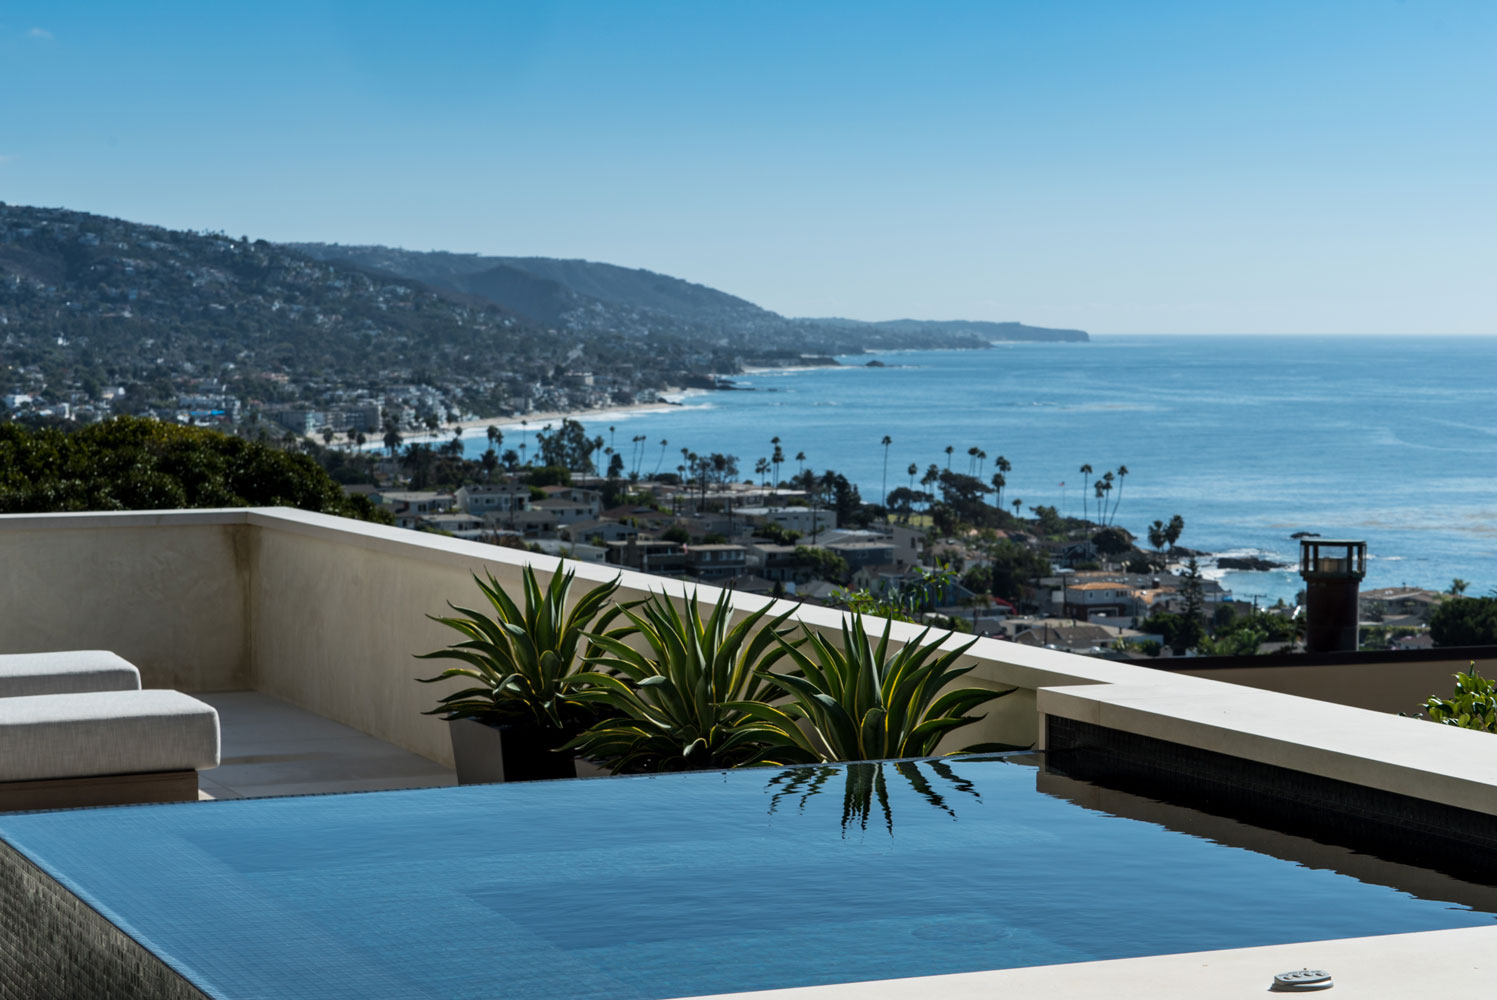 Infinity-Pool-Ocean-Views-Corbin-Reeves.jpg